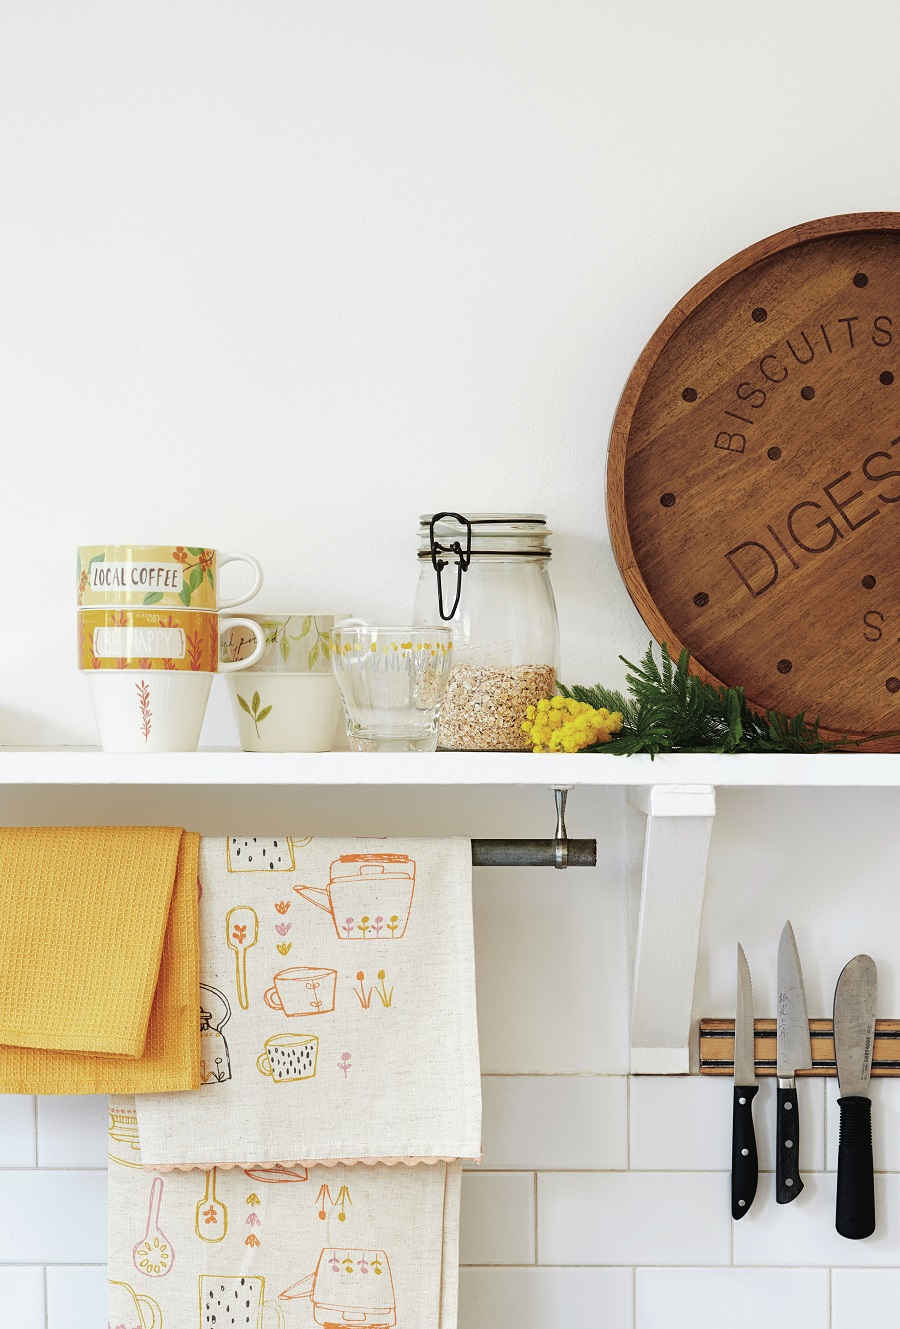 Kitchen Shelf Life - The Good, The Bad and The Ugly